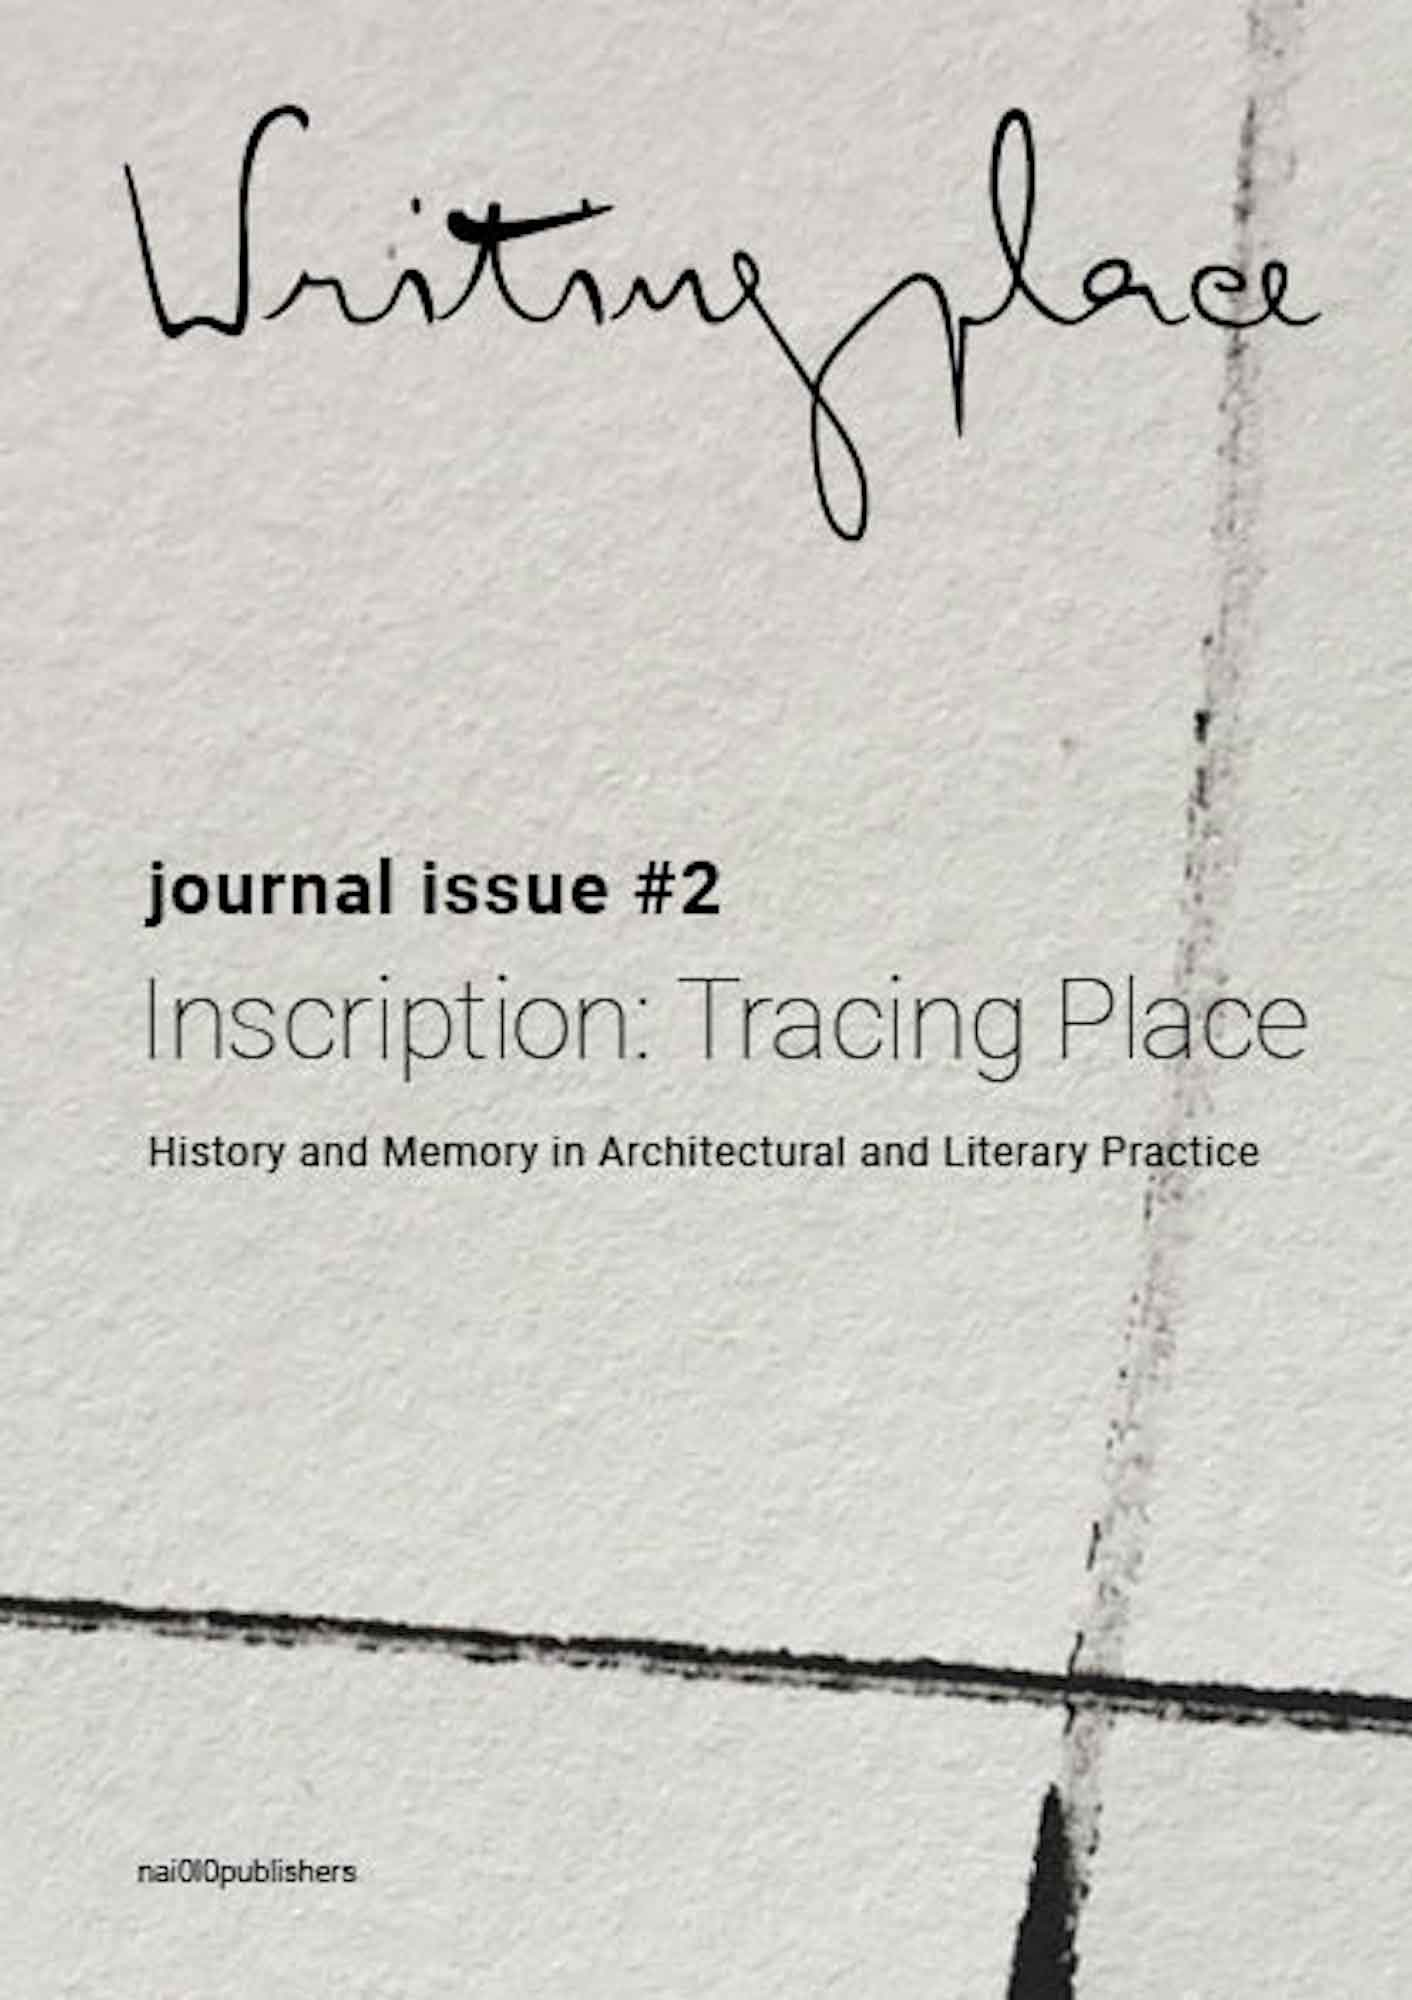 Writingplace journal, issue 2